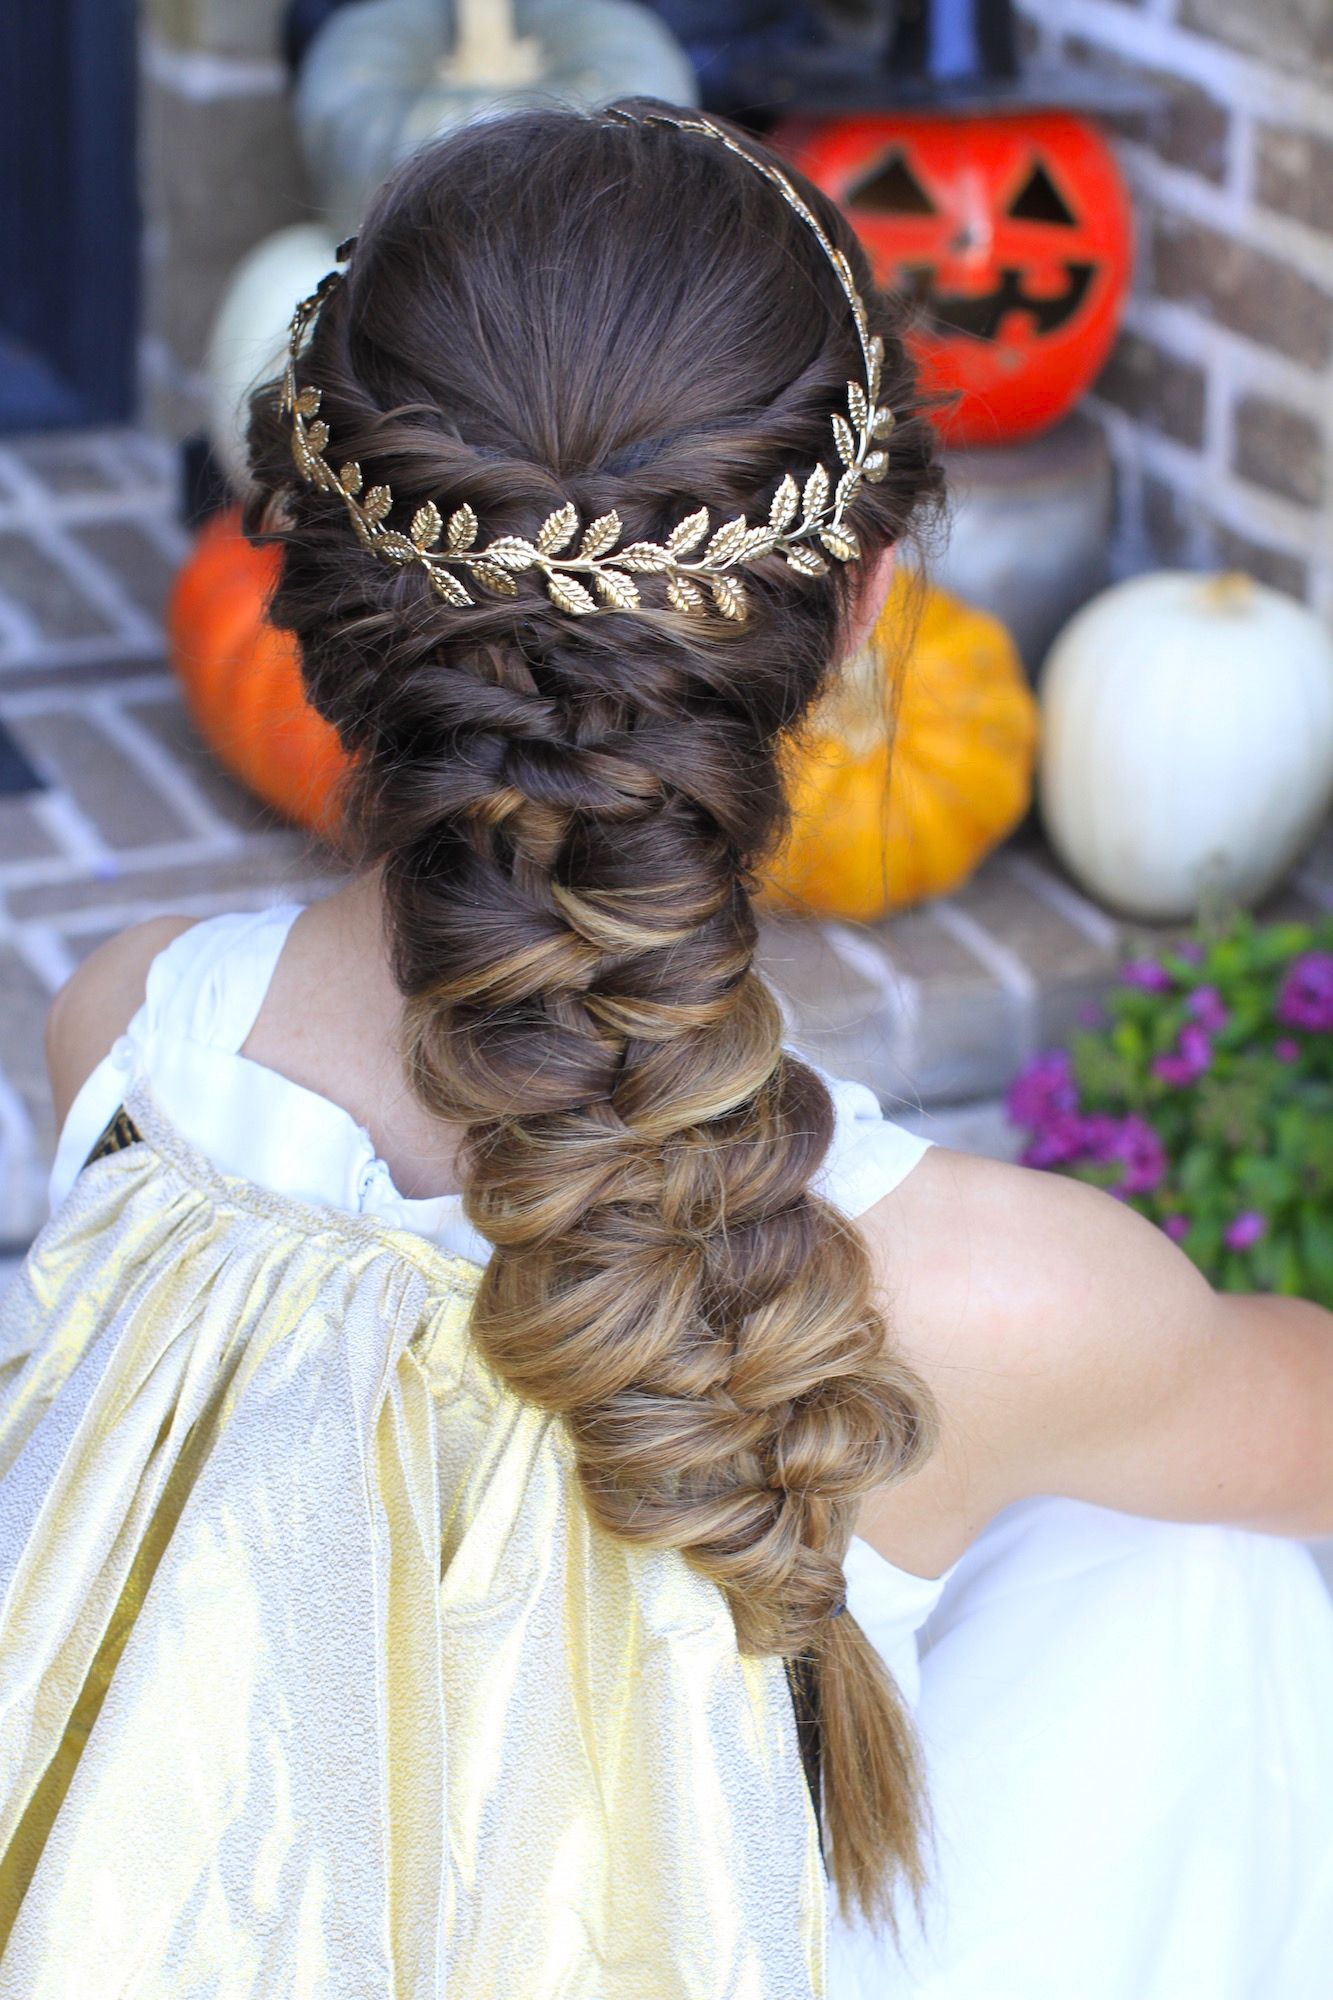 60 cute easy half up half down hairstyles - for wedding, prom, and